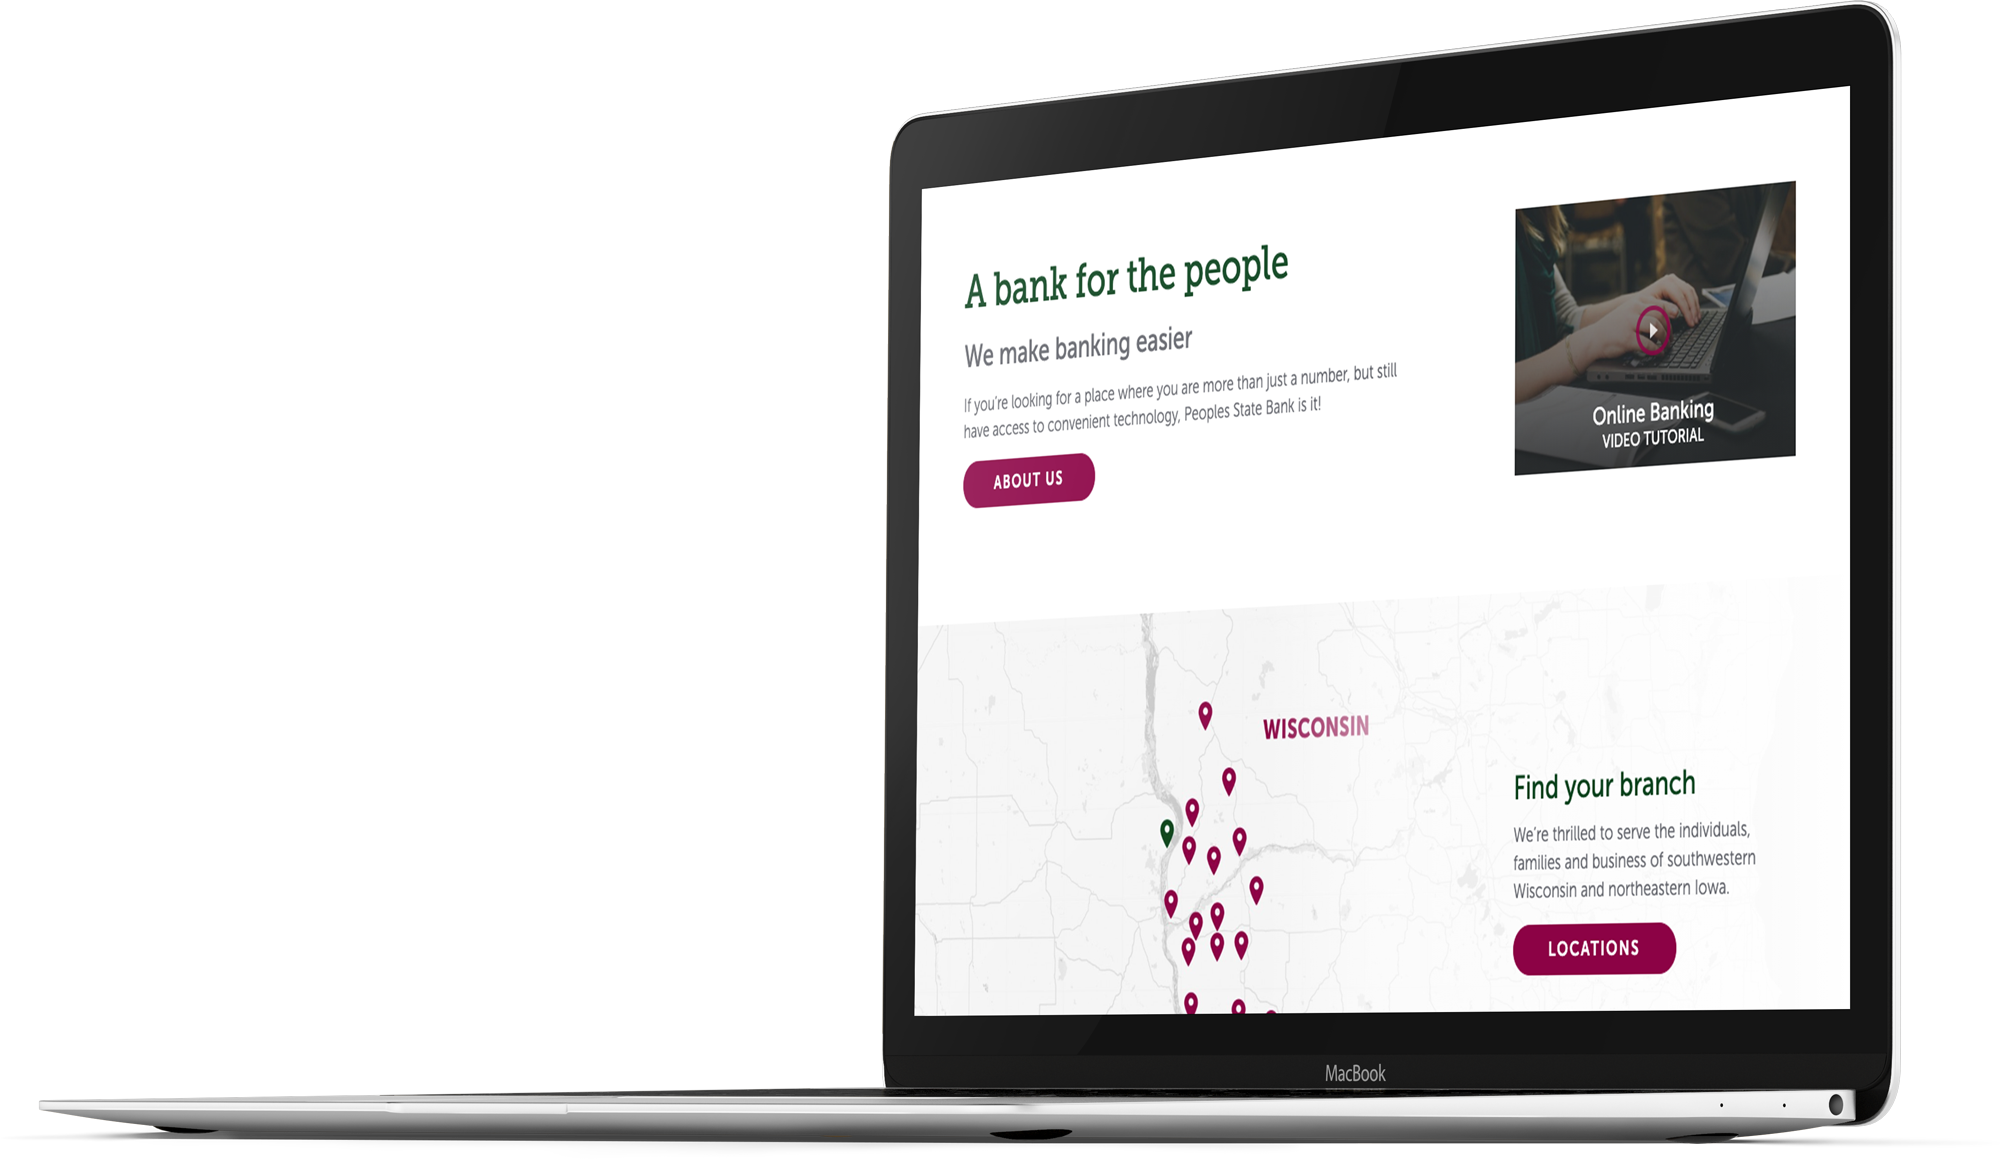 Bank website design for Peoples State Bank on a laptop screen